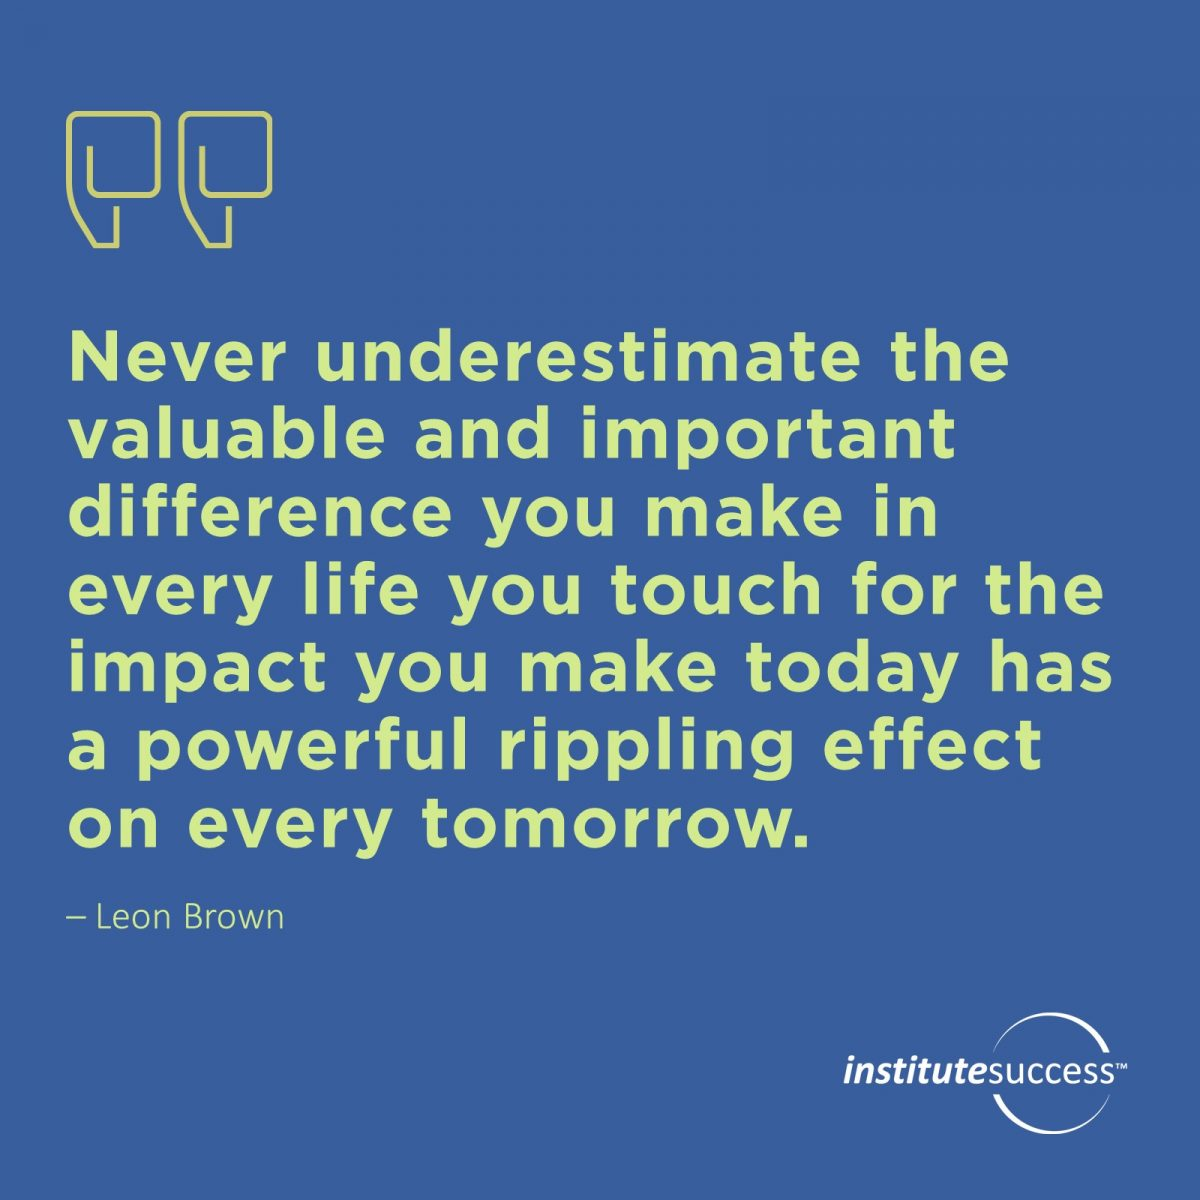 Never underestimate the valuable and important difference you make in every life you touch for the impact you make today has a powerful rippling effect on every tomorrow.  Leon Brown